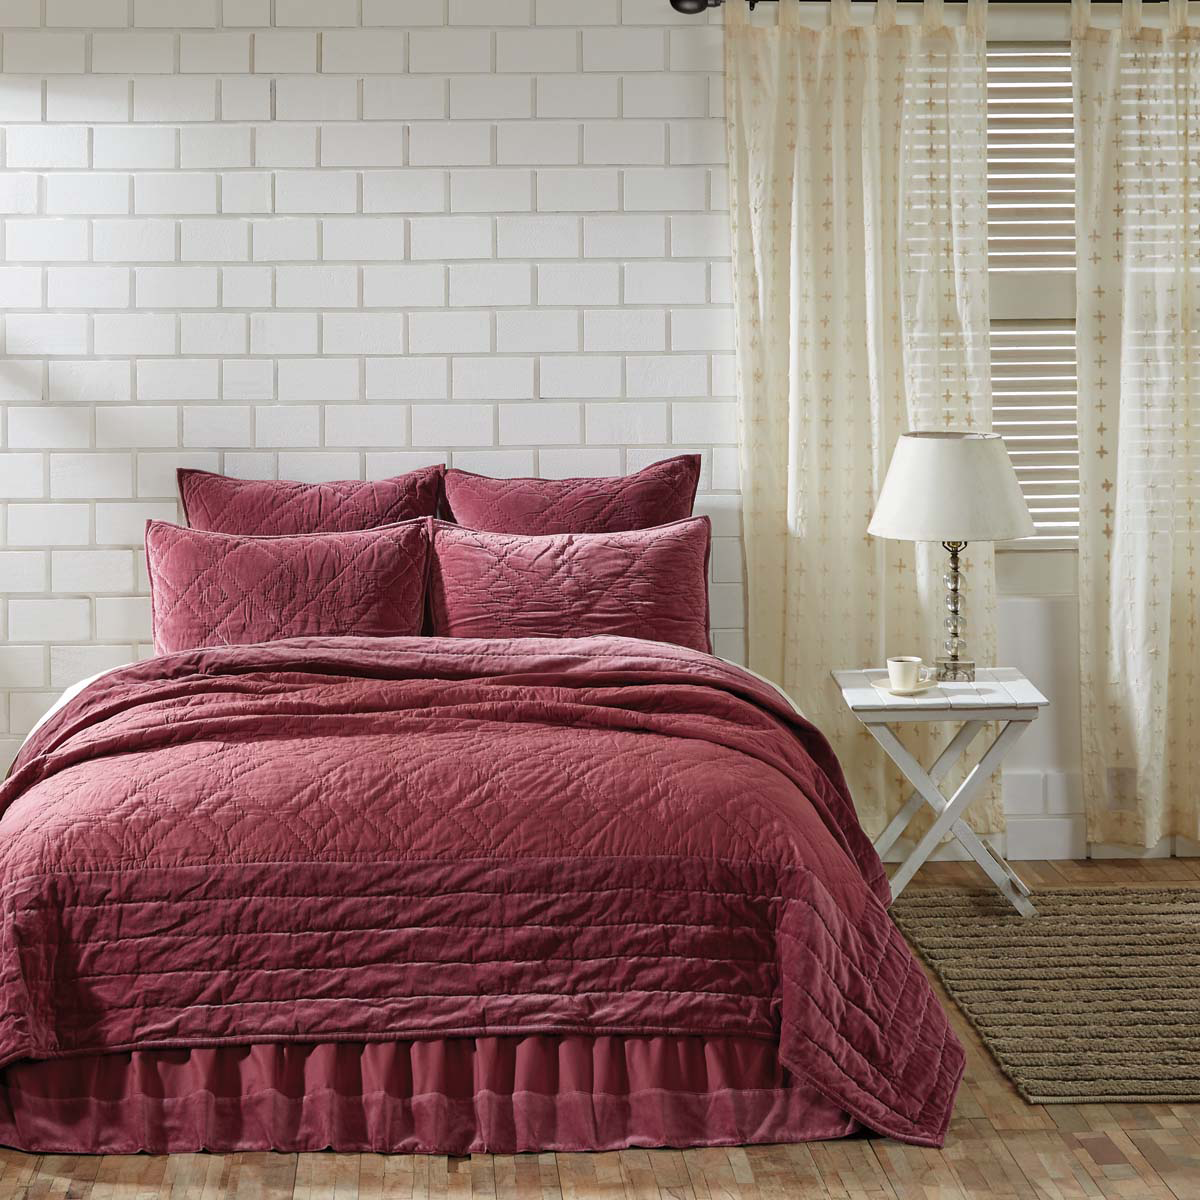 6-pc King - ELEANOR MAUVE Quilt Farmhouse Set - Mulberry Velvet - VHC Brands